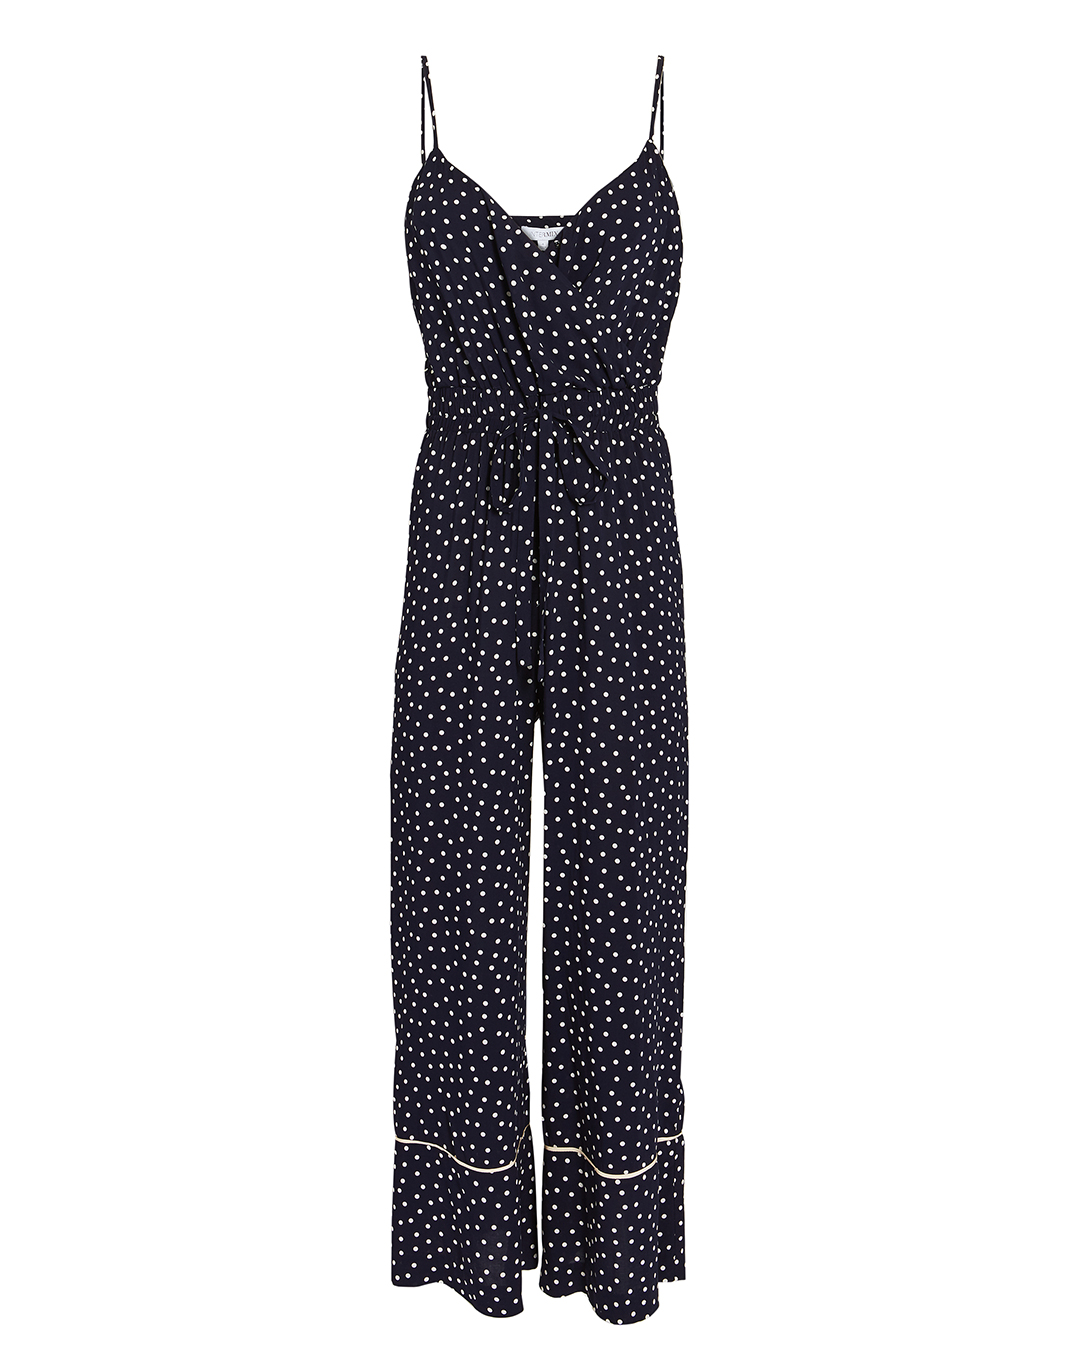 INTERMIX MARNI DOT JUMPSUIT MULTI